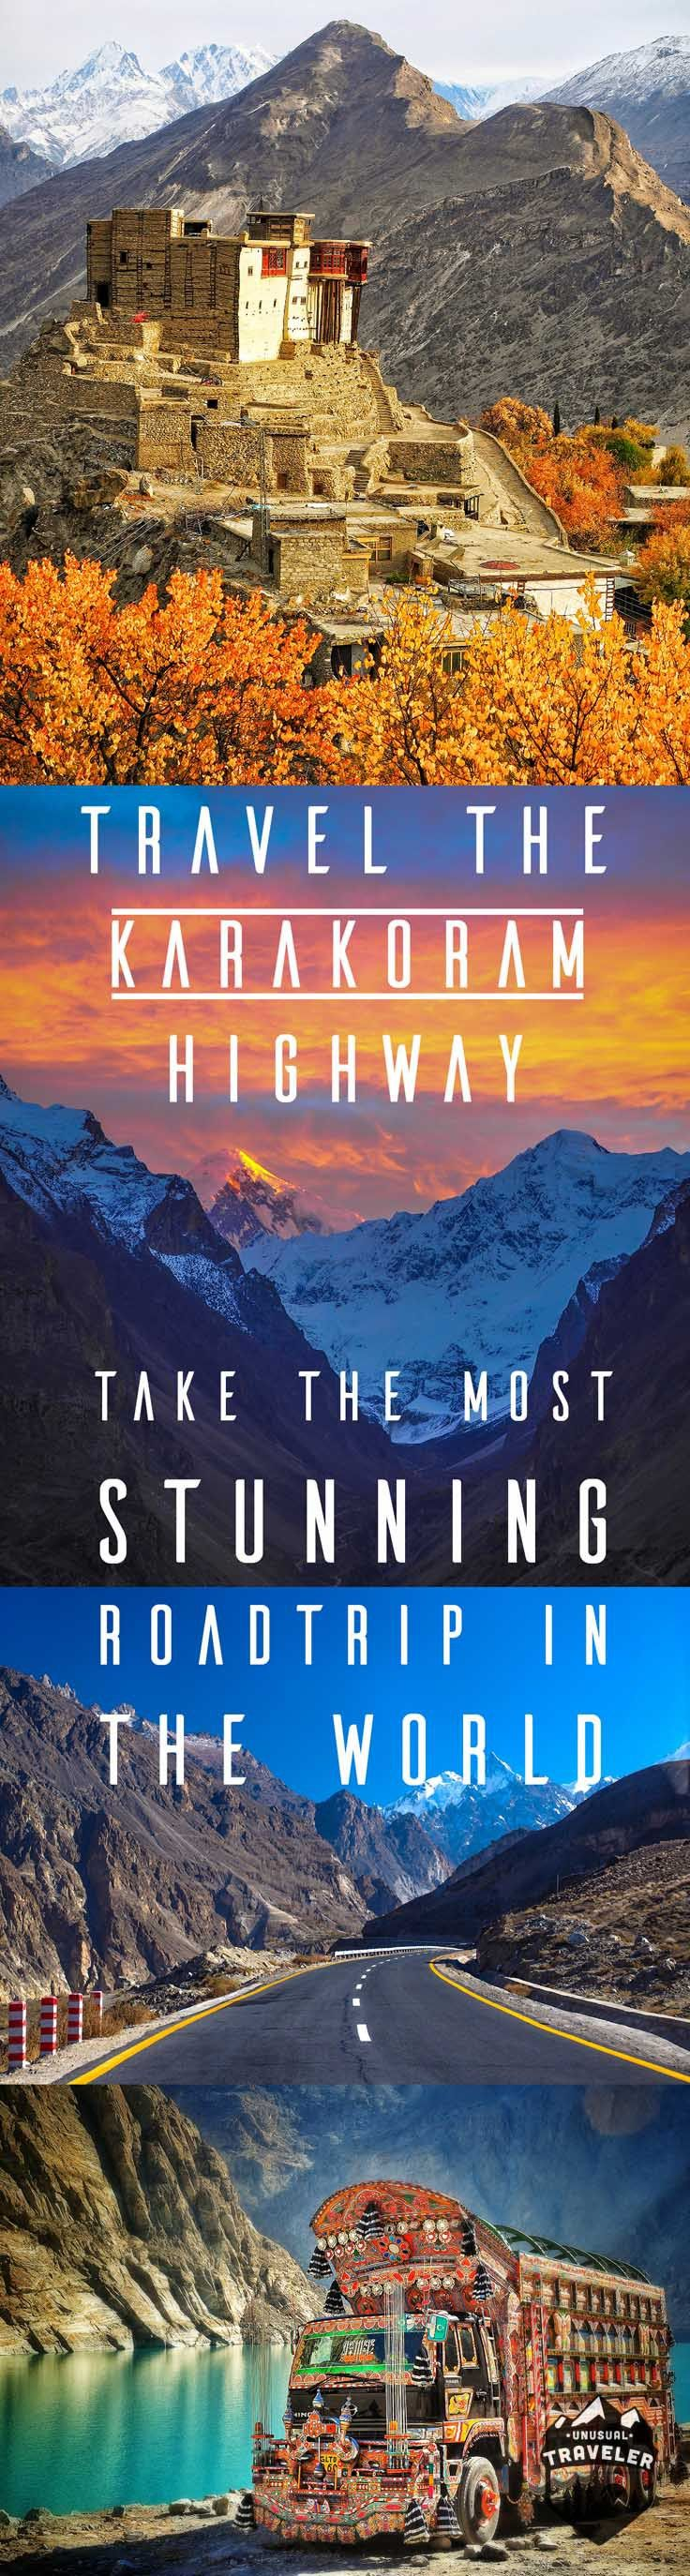 Travel the Karakoram Highway in Pakistan, the worlds most stunning Road trip...#Pakistan #travel_tips #Karakoram